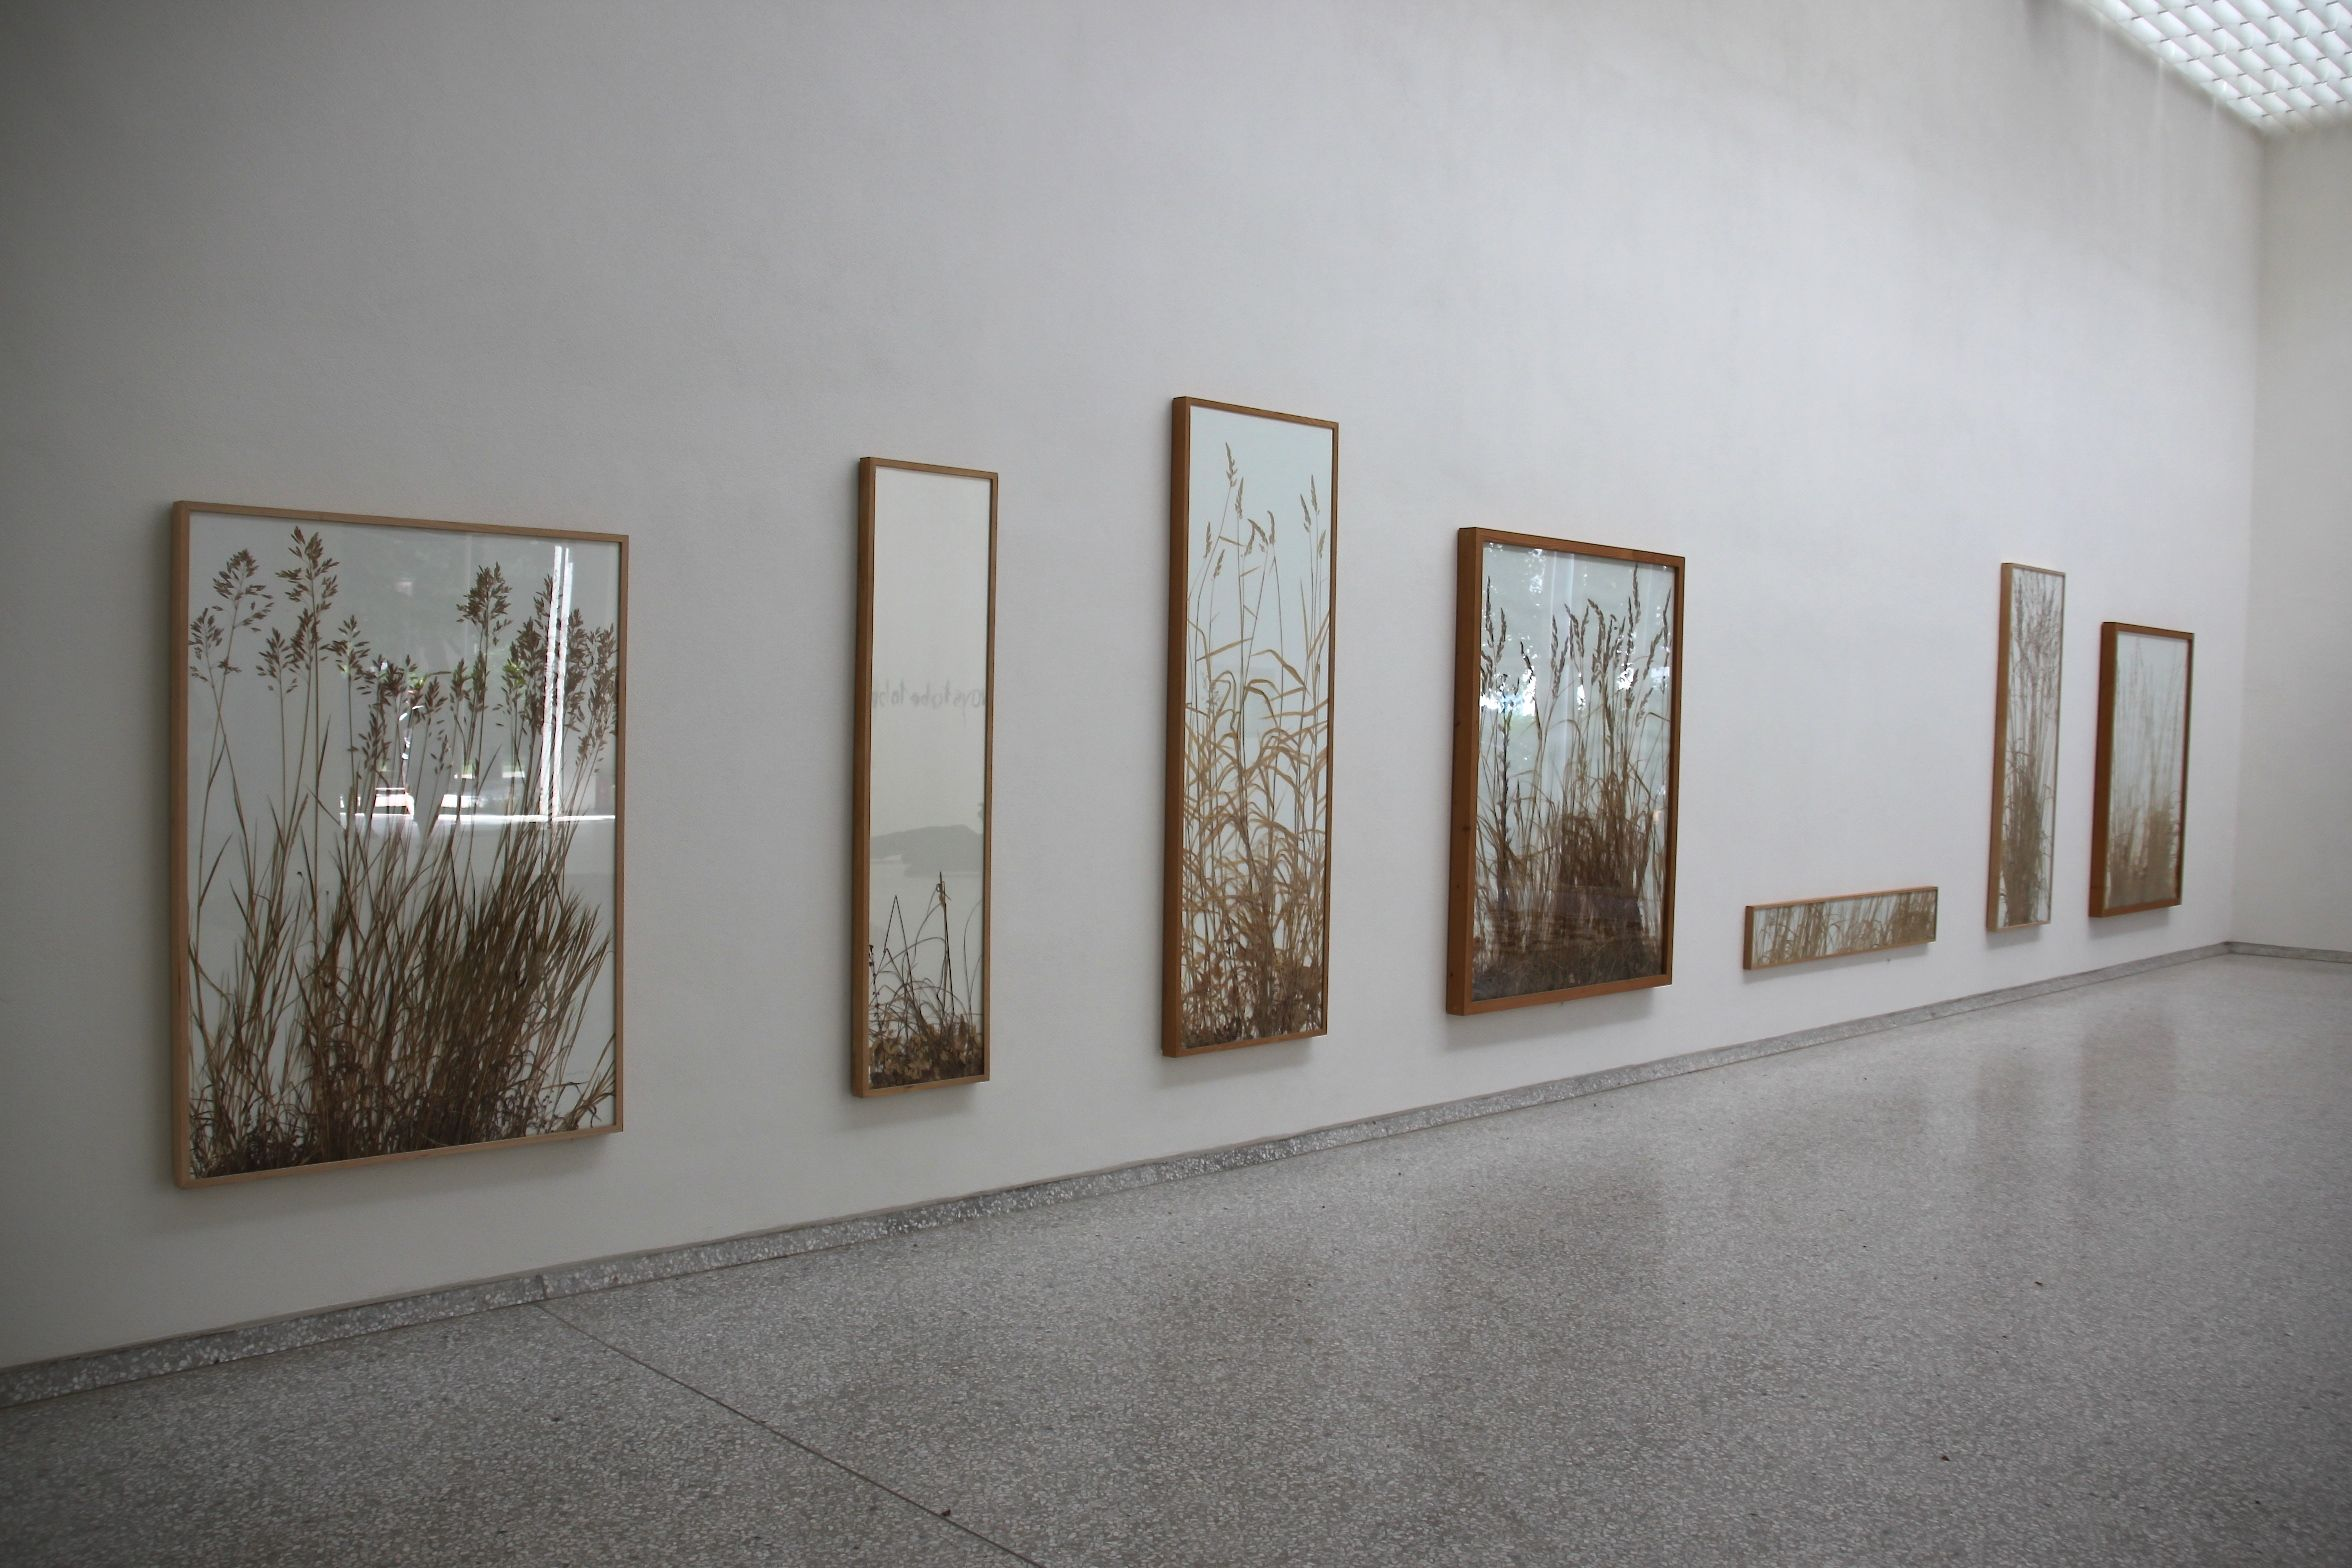 Giant grasses collected from around the Venice lagoon form beautiful pictures at the Dutch pavilion